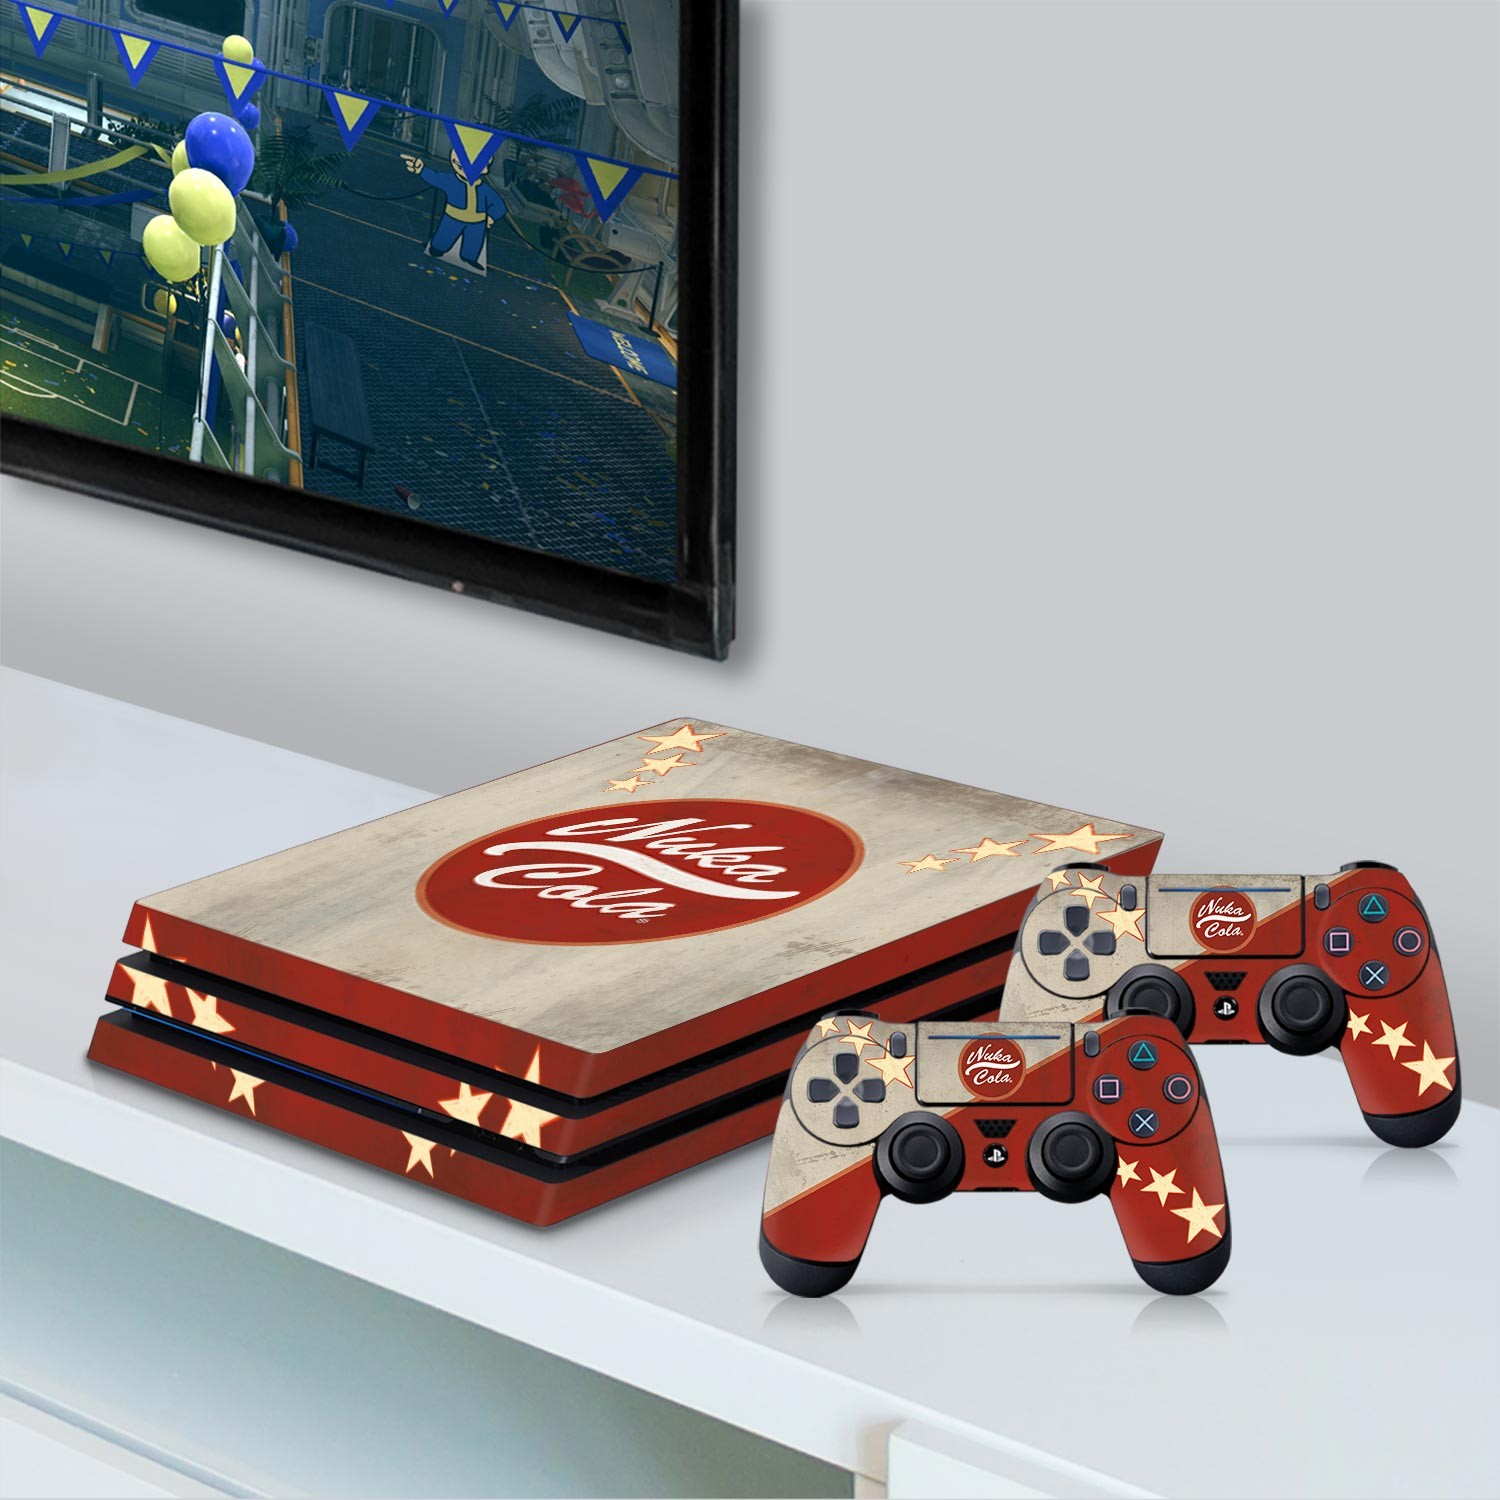 Officially Licensed Console Skin Bundle for PS4 Pro - Fallout - Nuka Cola